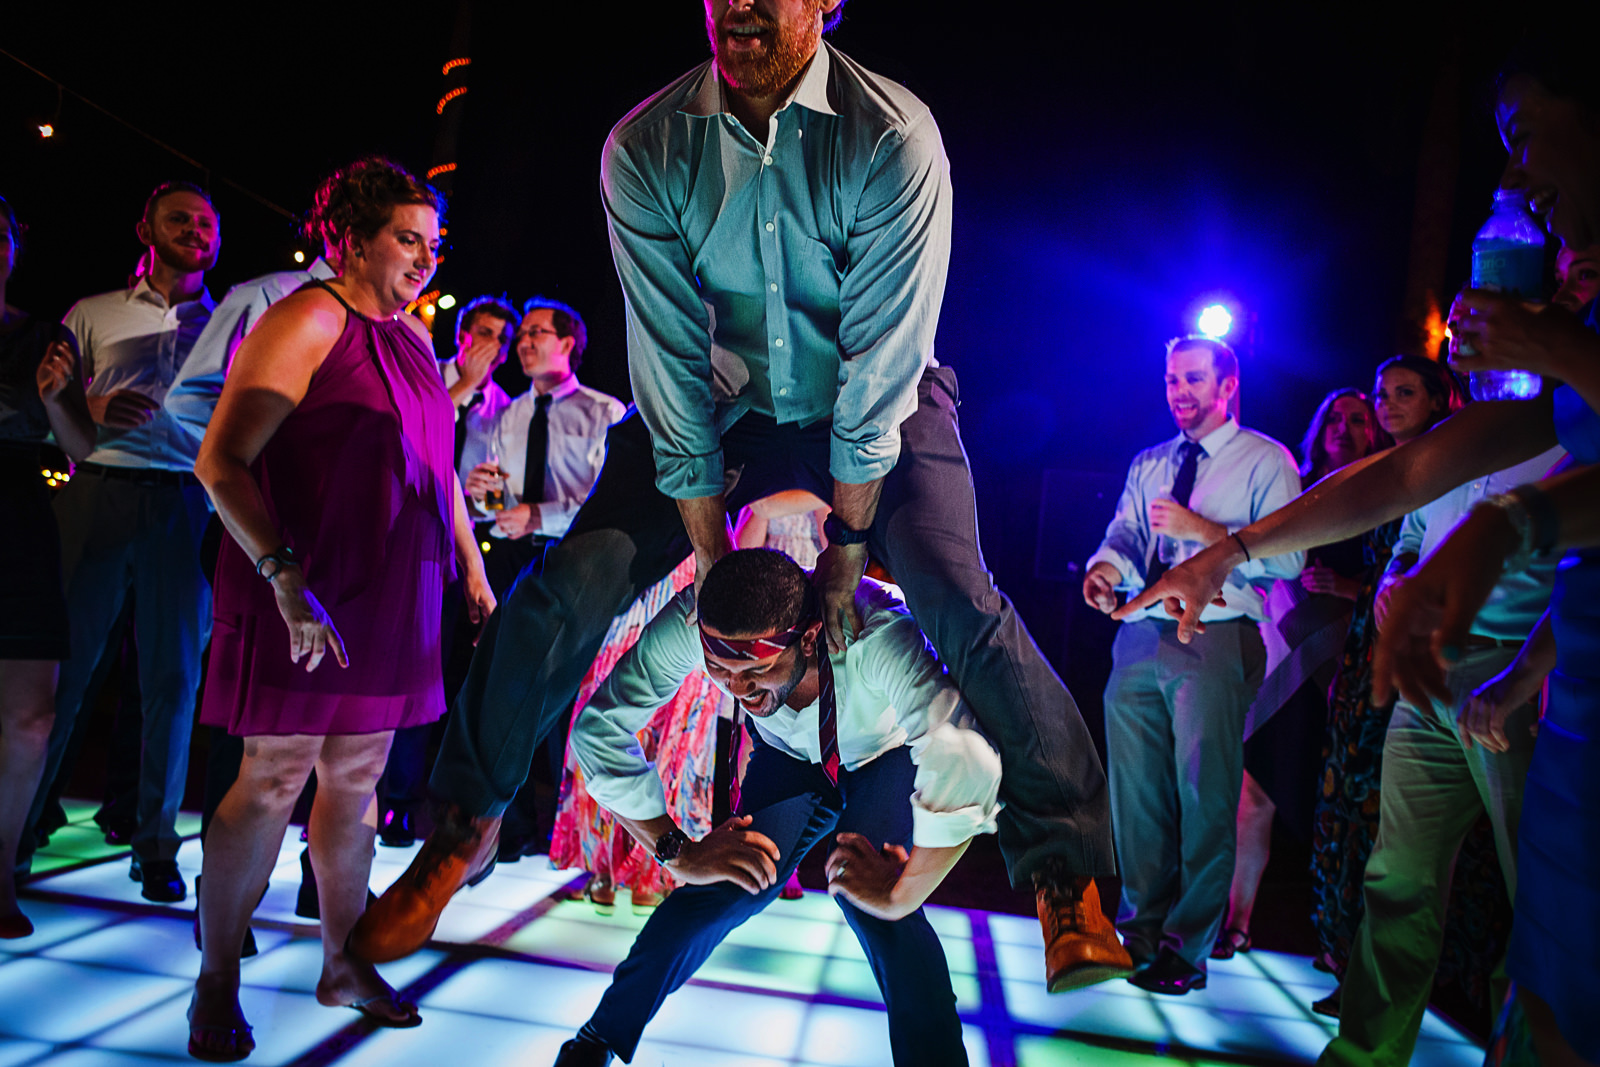 Guest jumping over other guest at wedding reception party